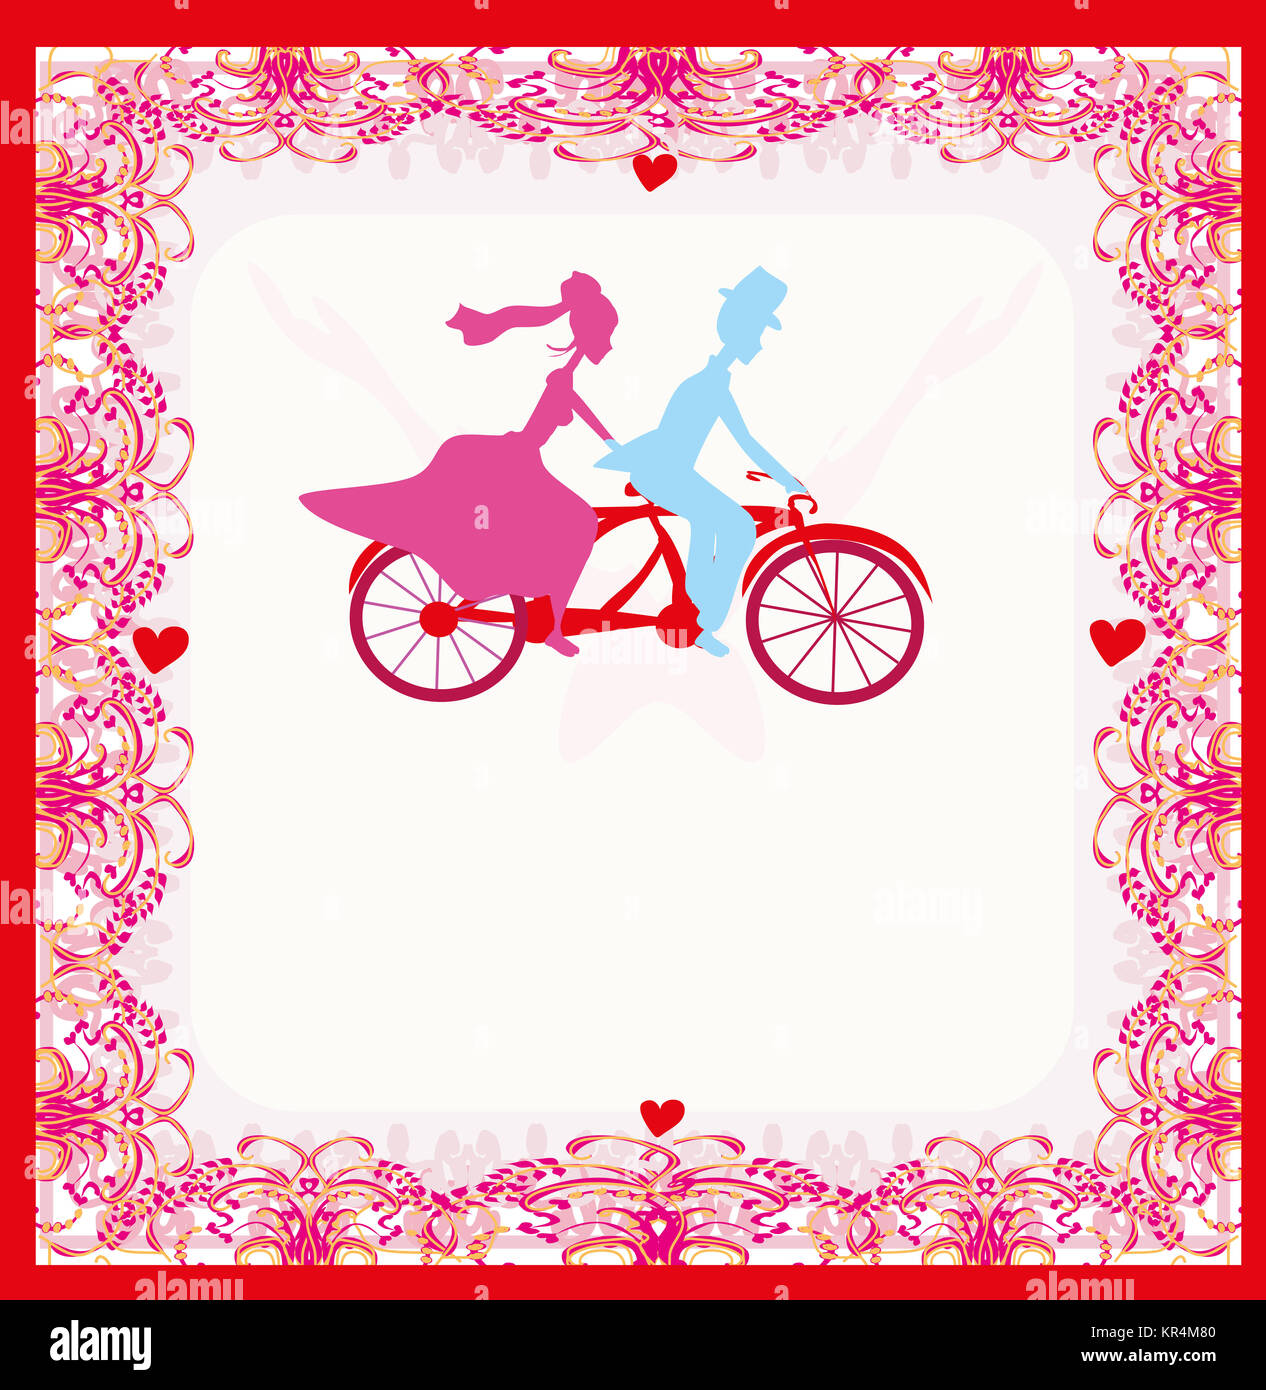 Wedding Invitation Bride Groom Riding Tandem Bicycle Stock Photos ...